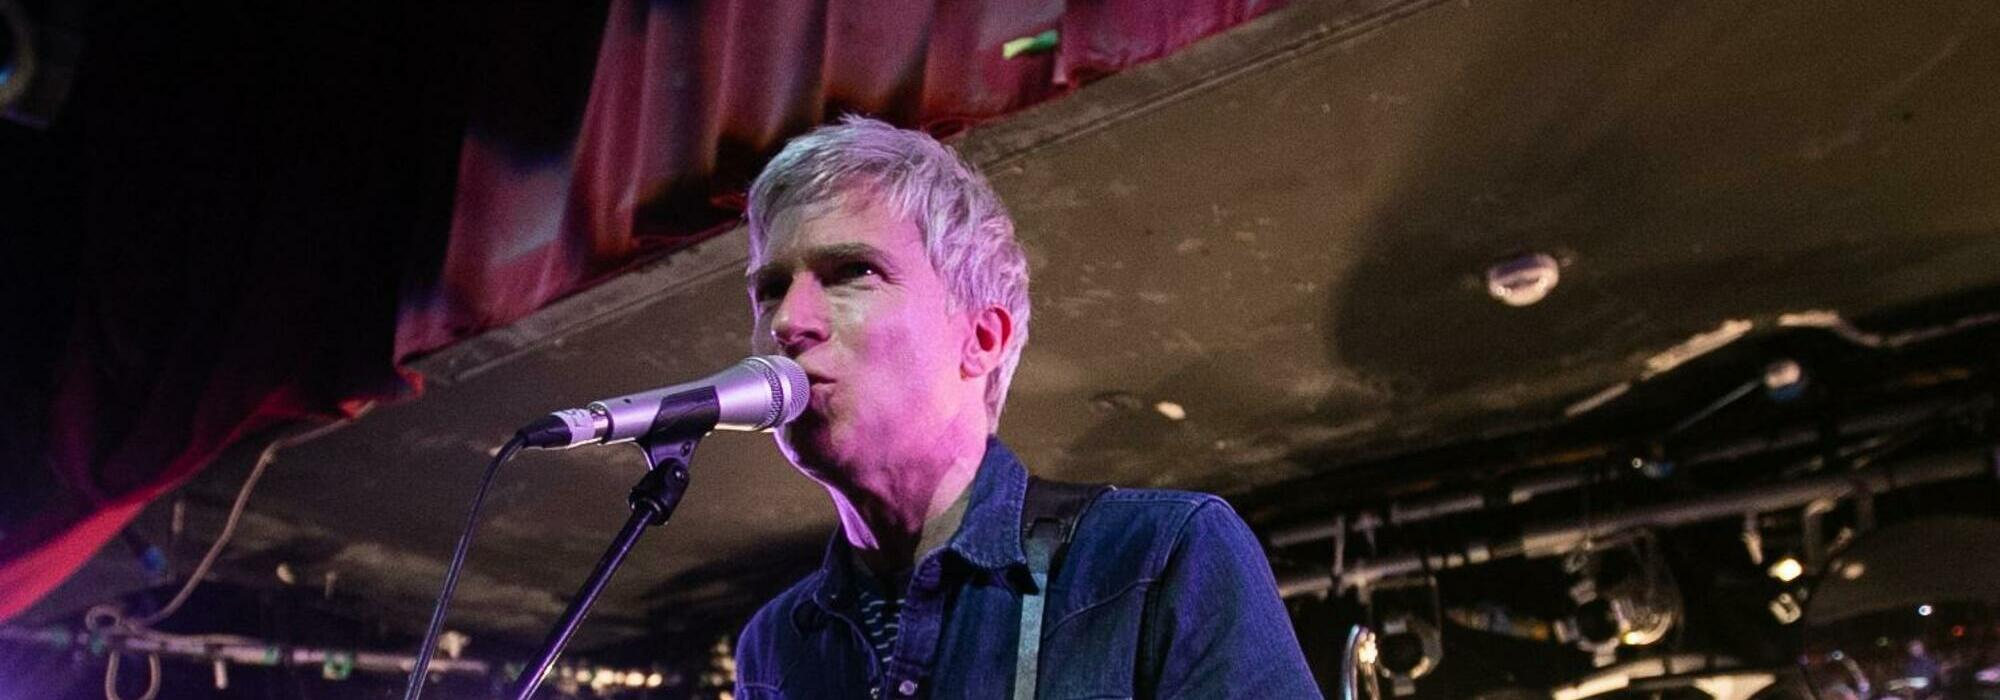 A Nada Surf live event